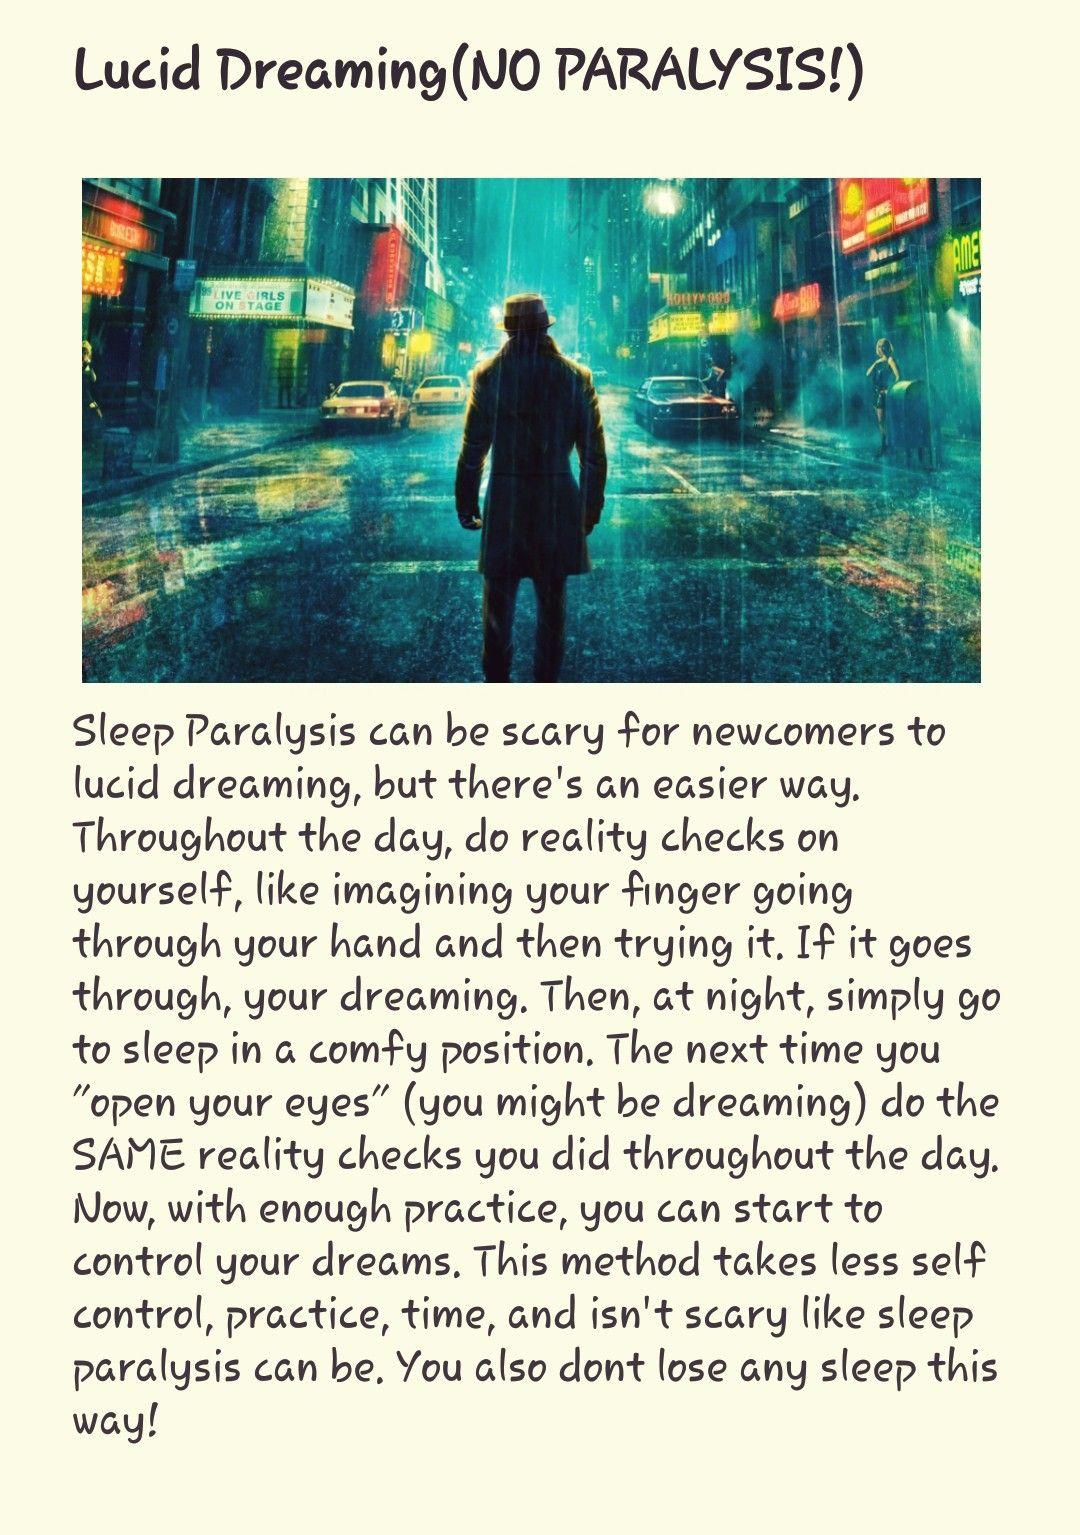 How to Lucid dream without Sleep Paralysis! | Life tips